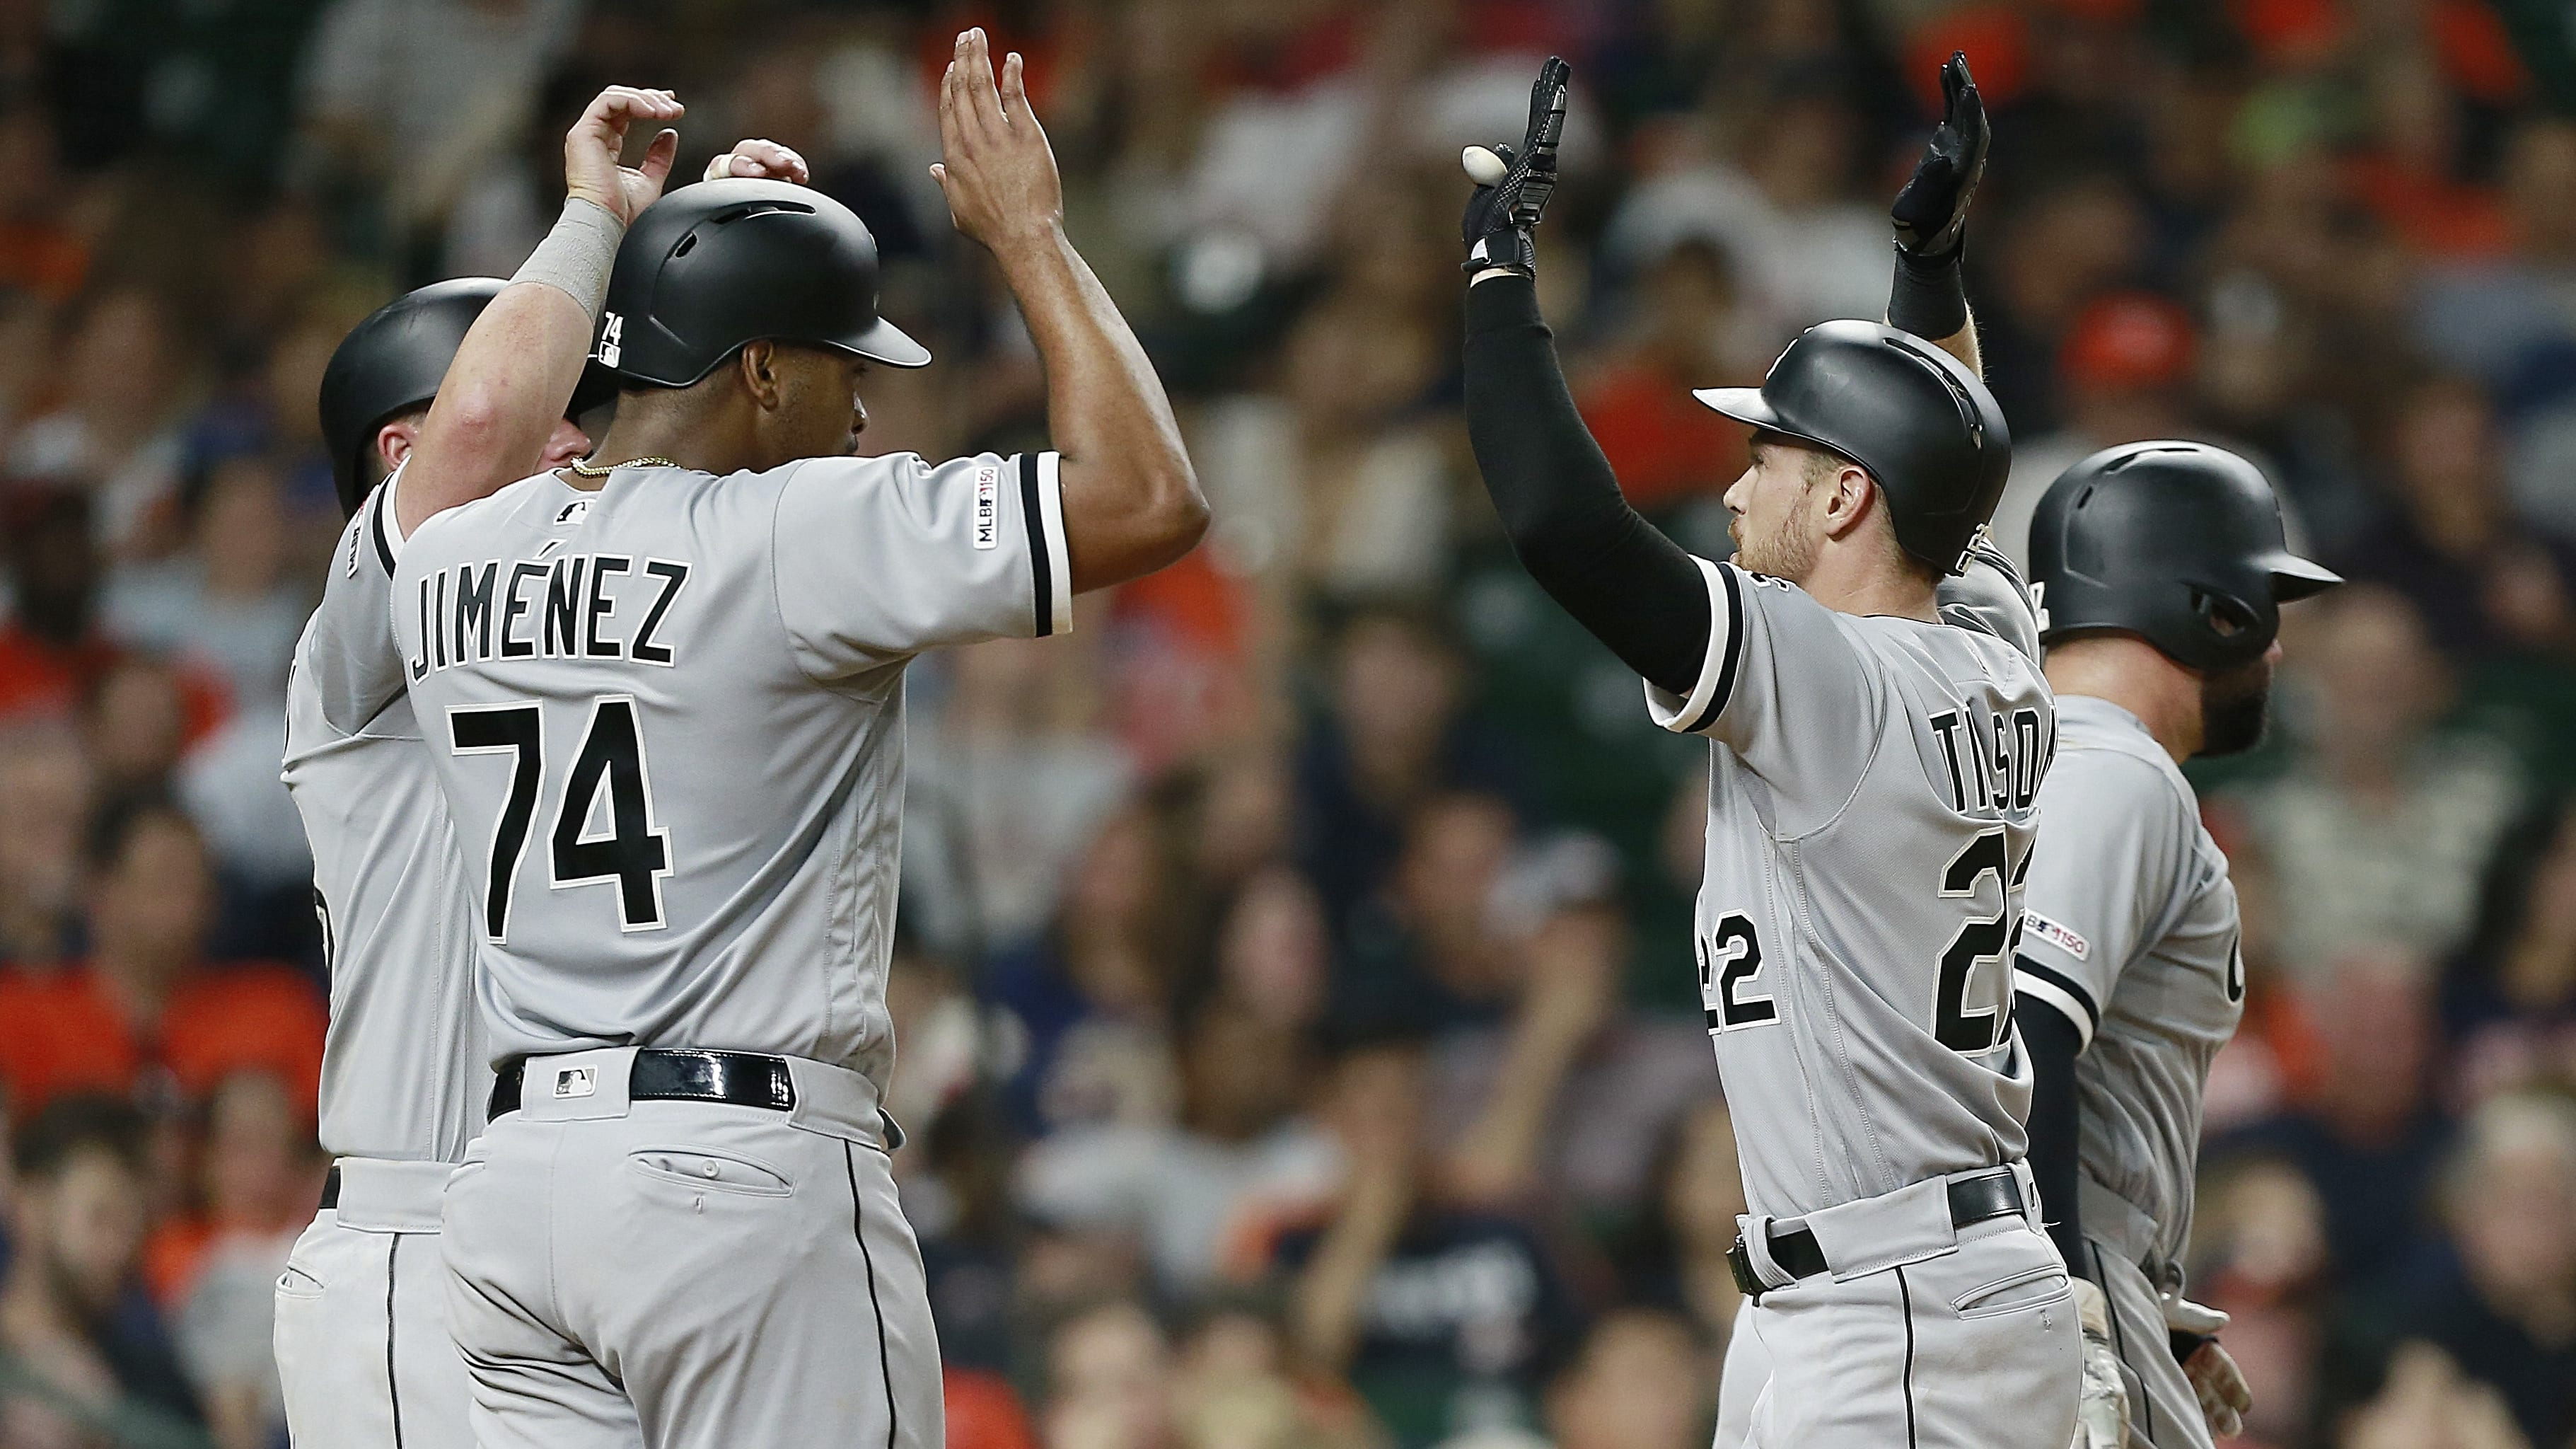 HOUSTON, TEXAS - MAY 22: Charlie Tilson #22 of the Chicago White Sox is congratulated at home plate by Eloy Jimenez #74, James McCann #33 and Yonder Alonso #17 after hitting a grand slam in the sixth inning against the Houston Astros at Minute Maid Park on May 22, 2019 in Houston, Texas. (Photo by Bob Levey/Getty Images)